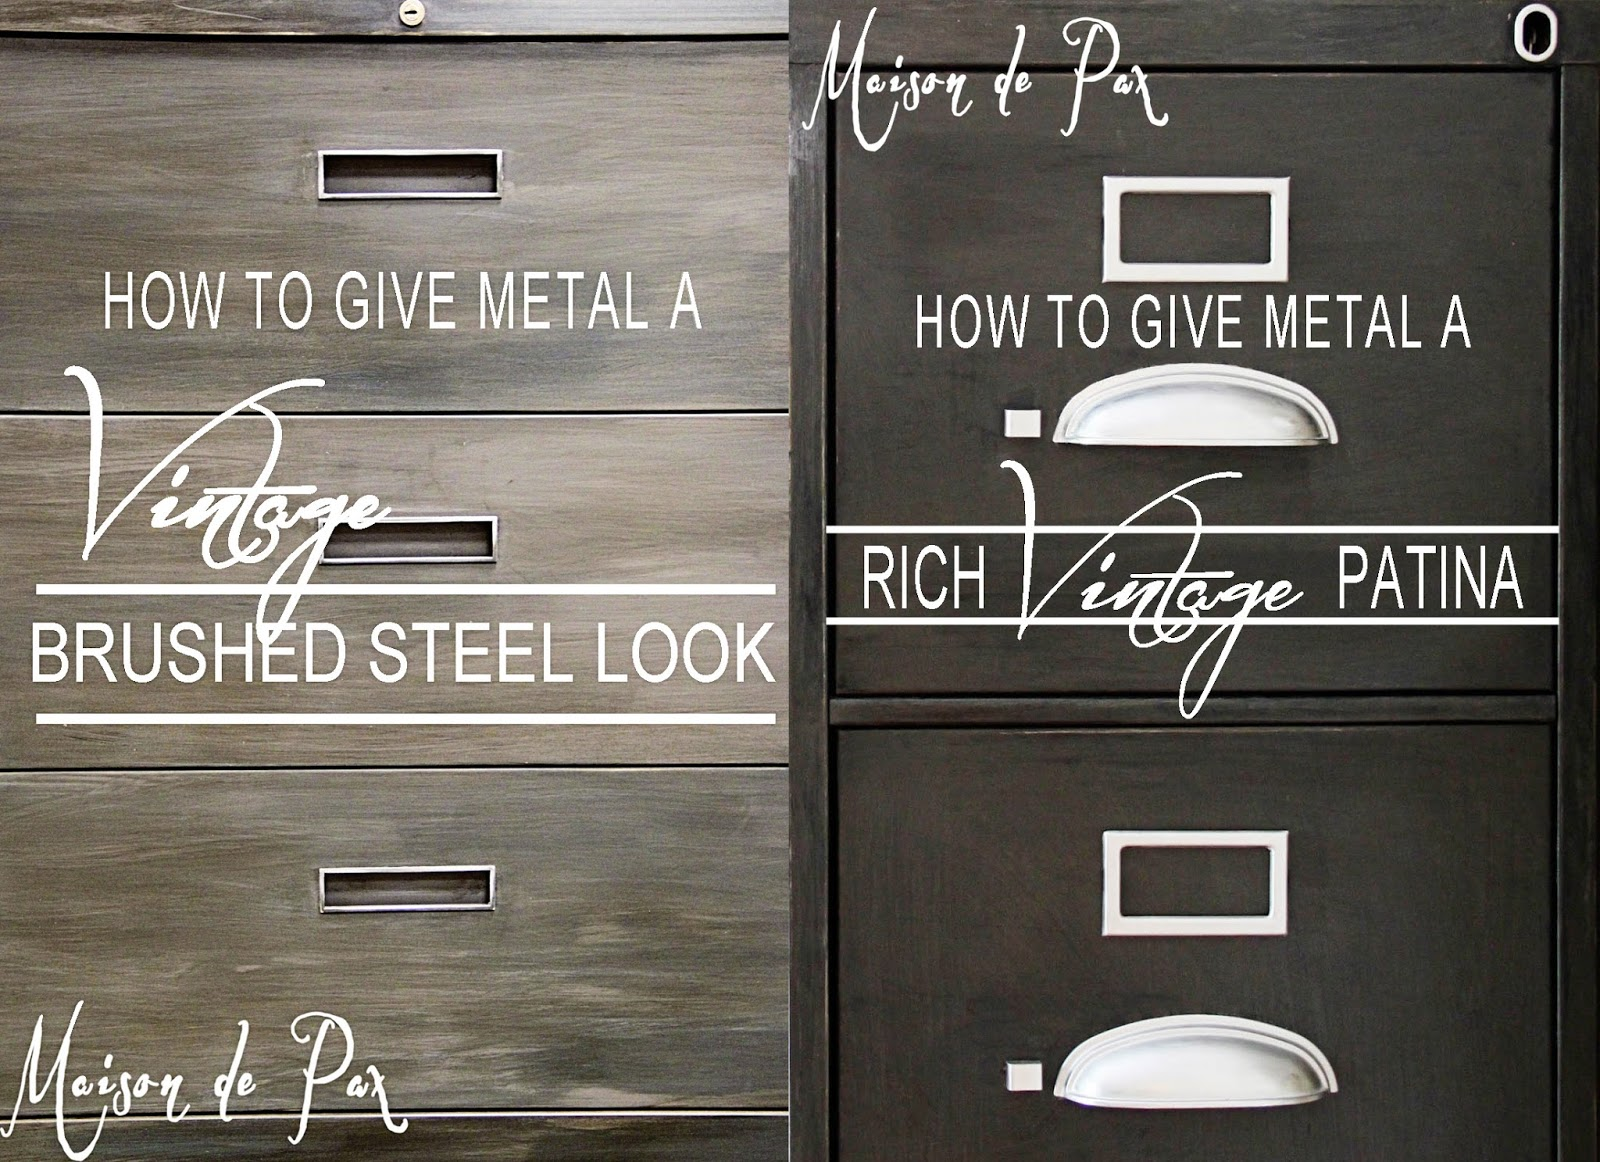 How to Give Metal a Brushed Steel Look - Maison de Pax